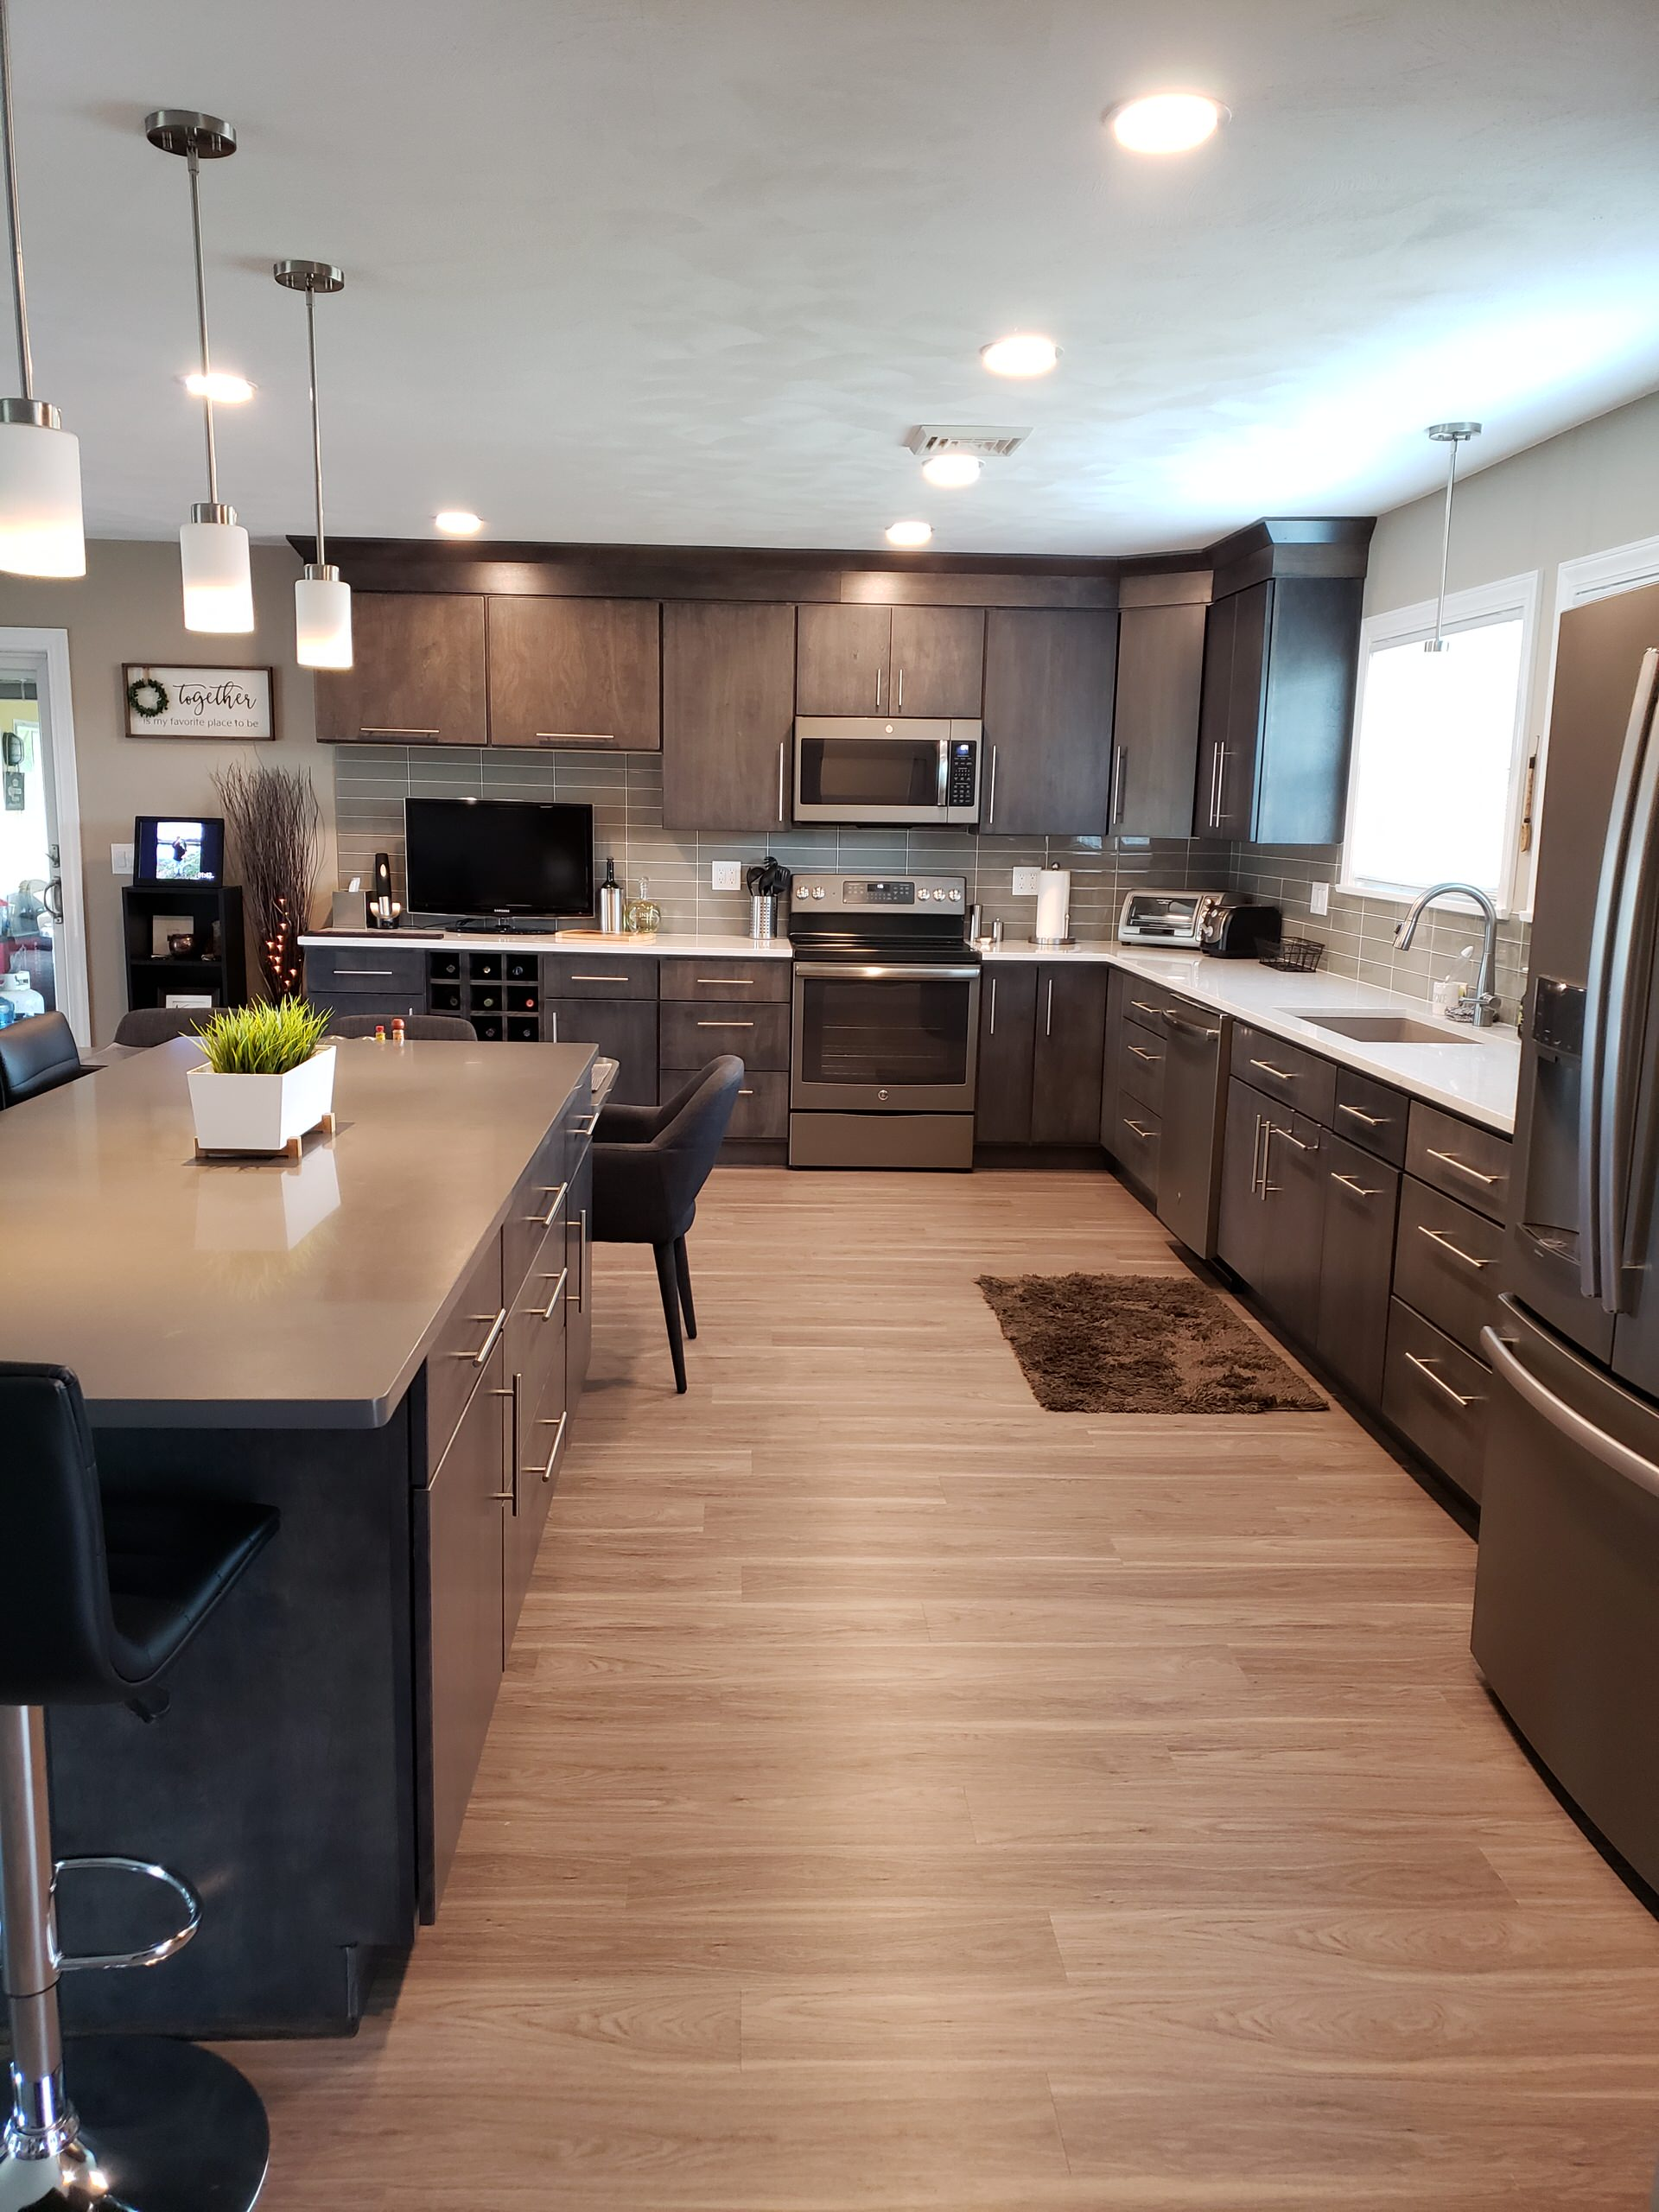 75 Beautiful Vinyl Floor Kitchen Pictures Ideas January 2021 Houzz